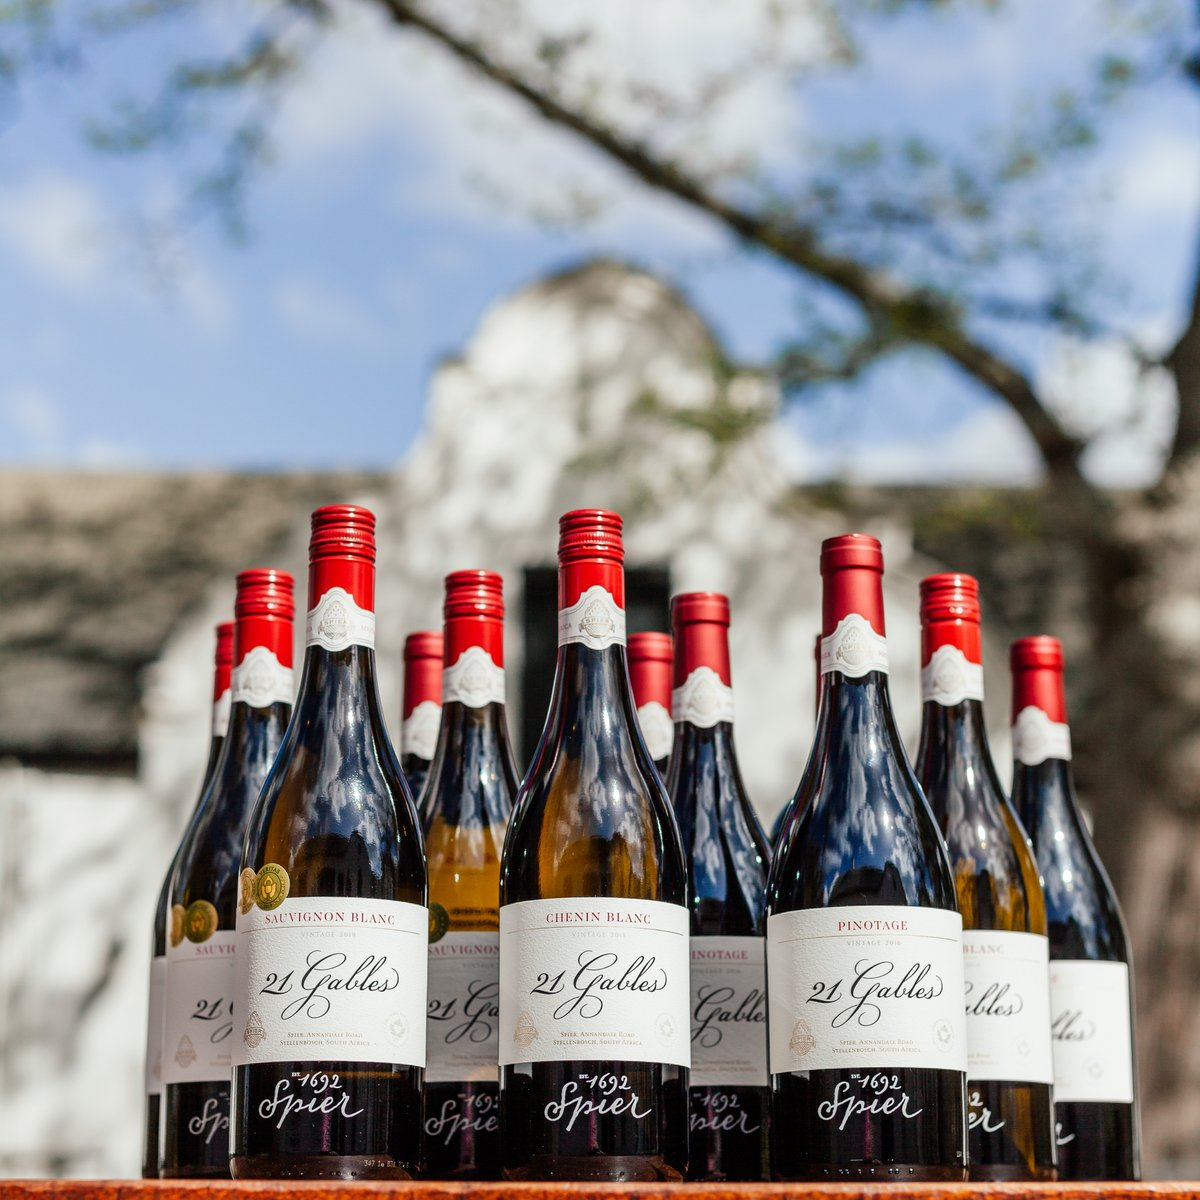 Spier is one of the oldest wine farms in Stellenbosch.  To celebrate #HeritageMonth 🇿🇦 we are bringing you a special Heritage Pack with 12 bottles of our 21 Gables wines, named in honour of the gables on the farm.  Shop here: https://t.co/jWOnBdqkmR https://t.co/0ZepmCGbZ0